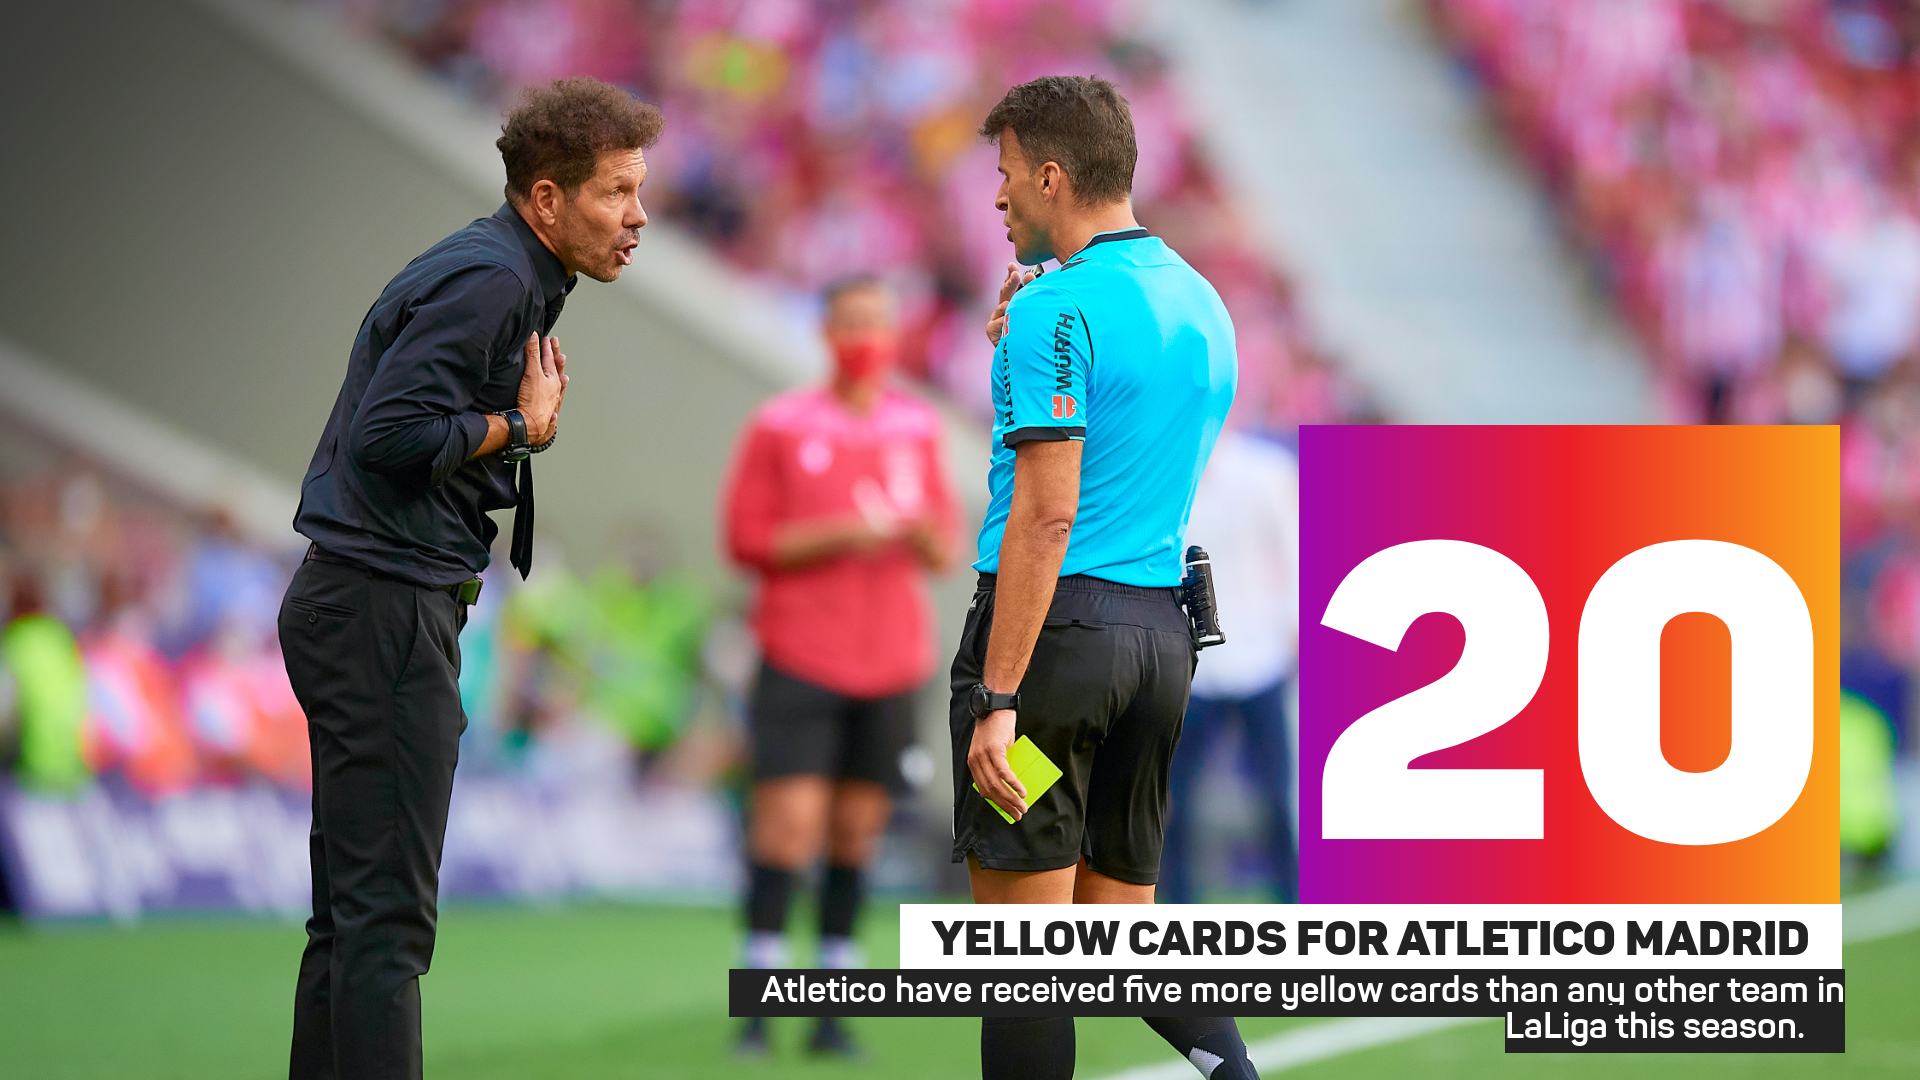 Atletico have received five more yellow cards than any other team in LaLiga this season. 